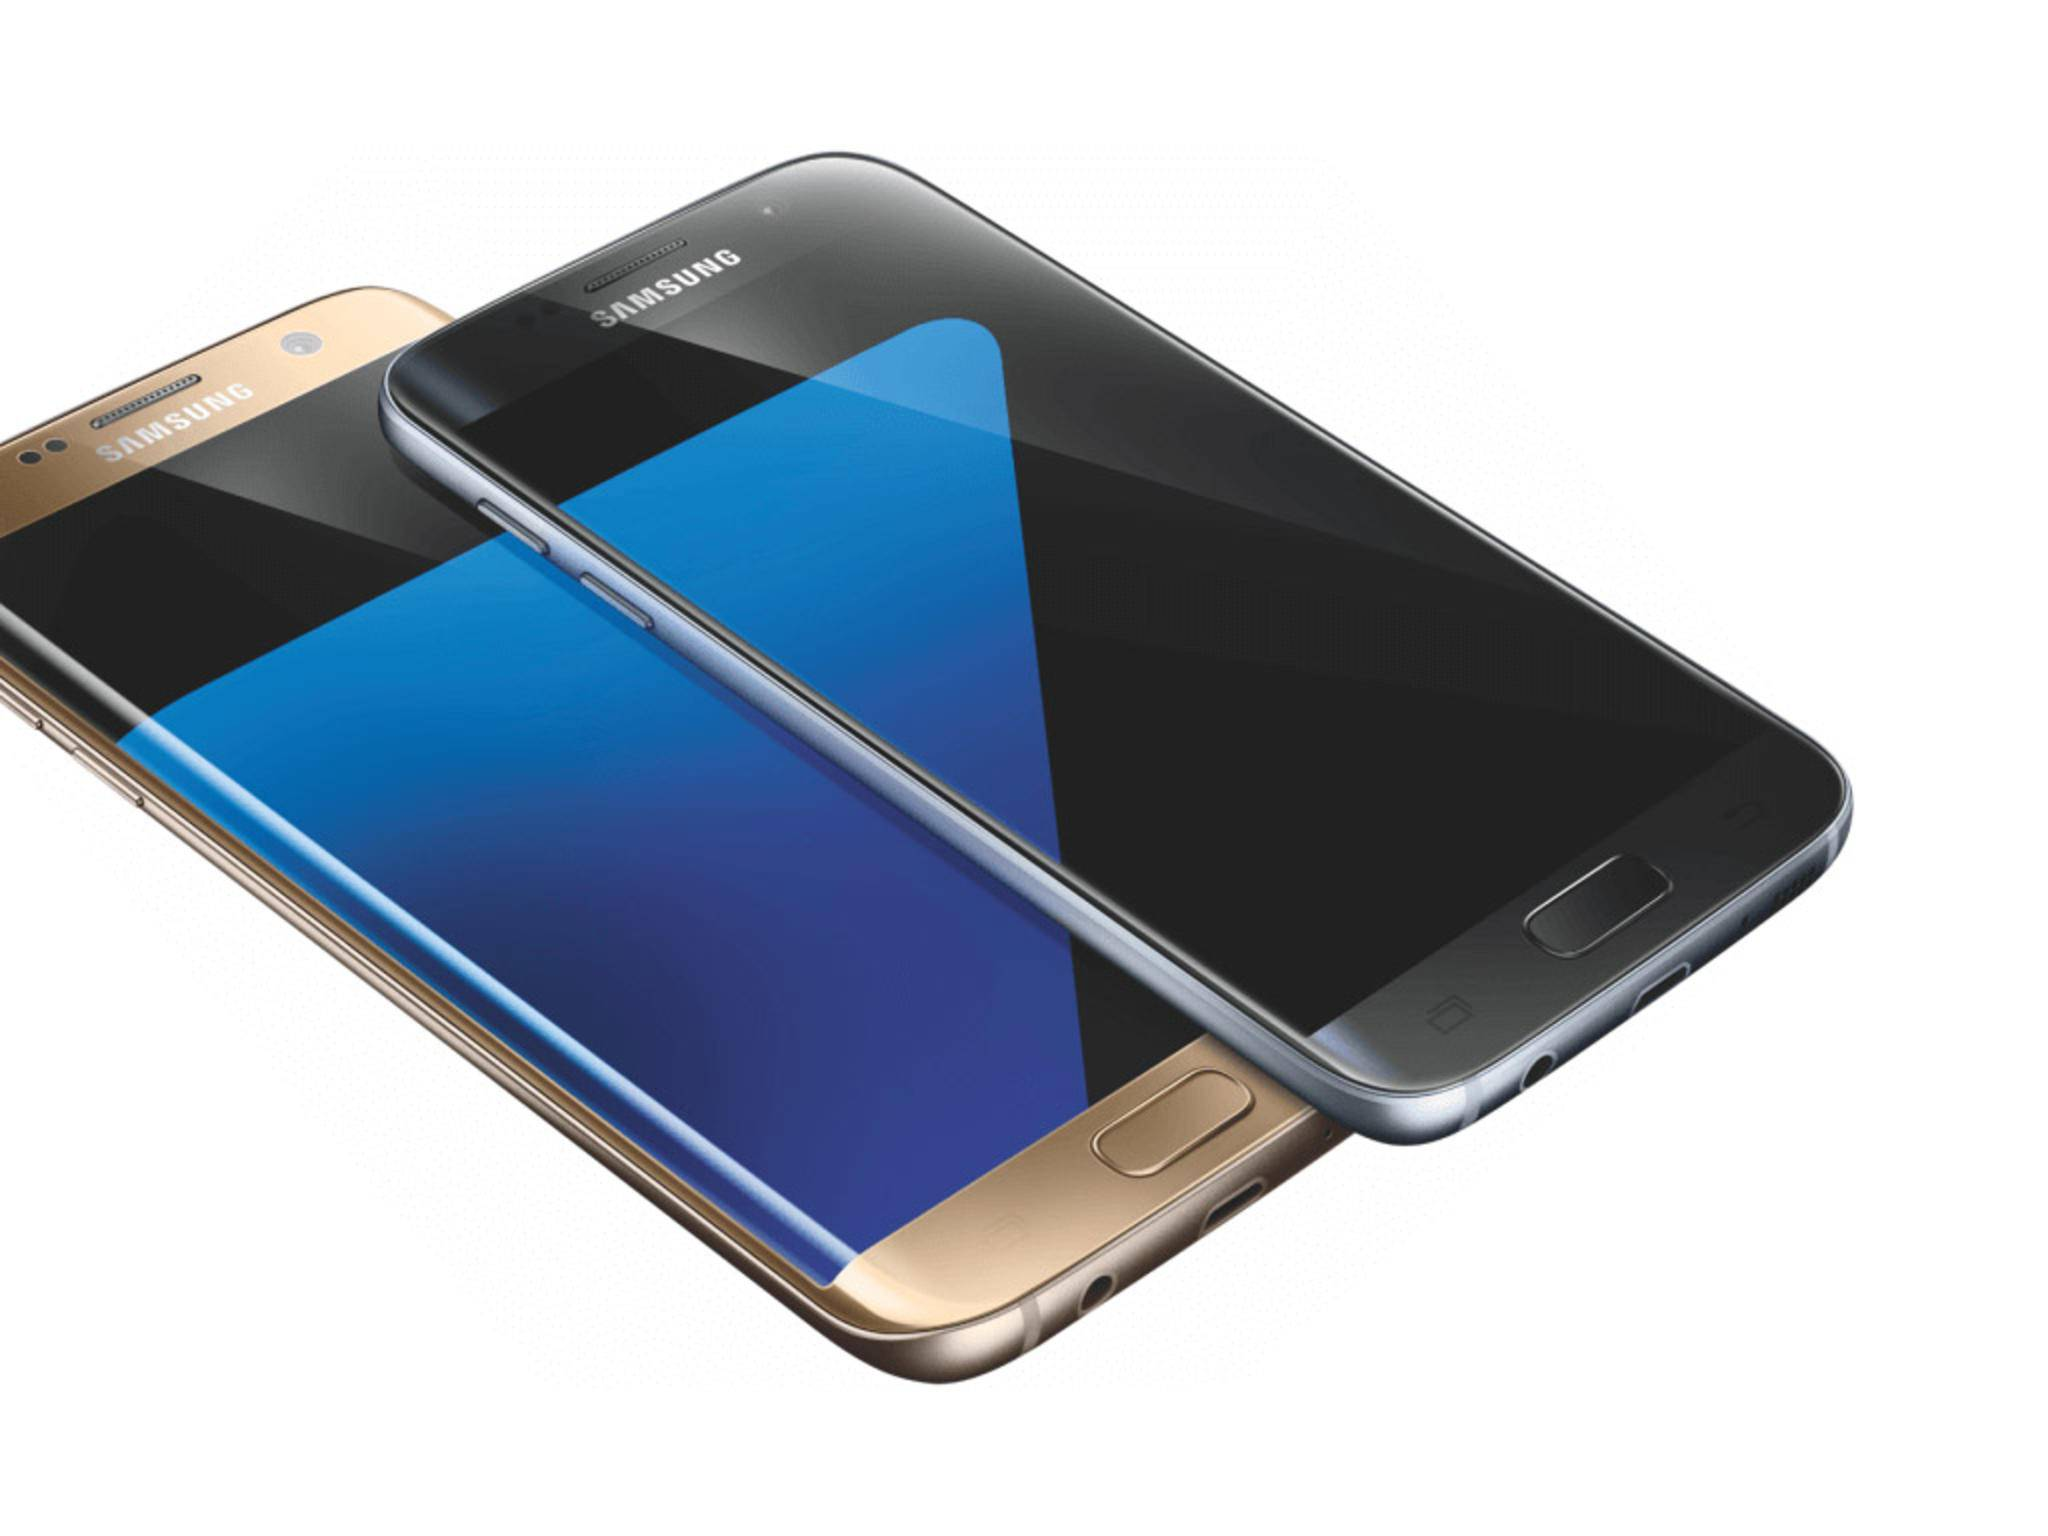 Galaxy-S7-Galaxy-S7-edge-Leak